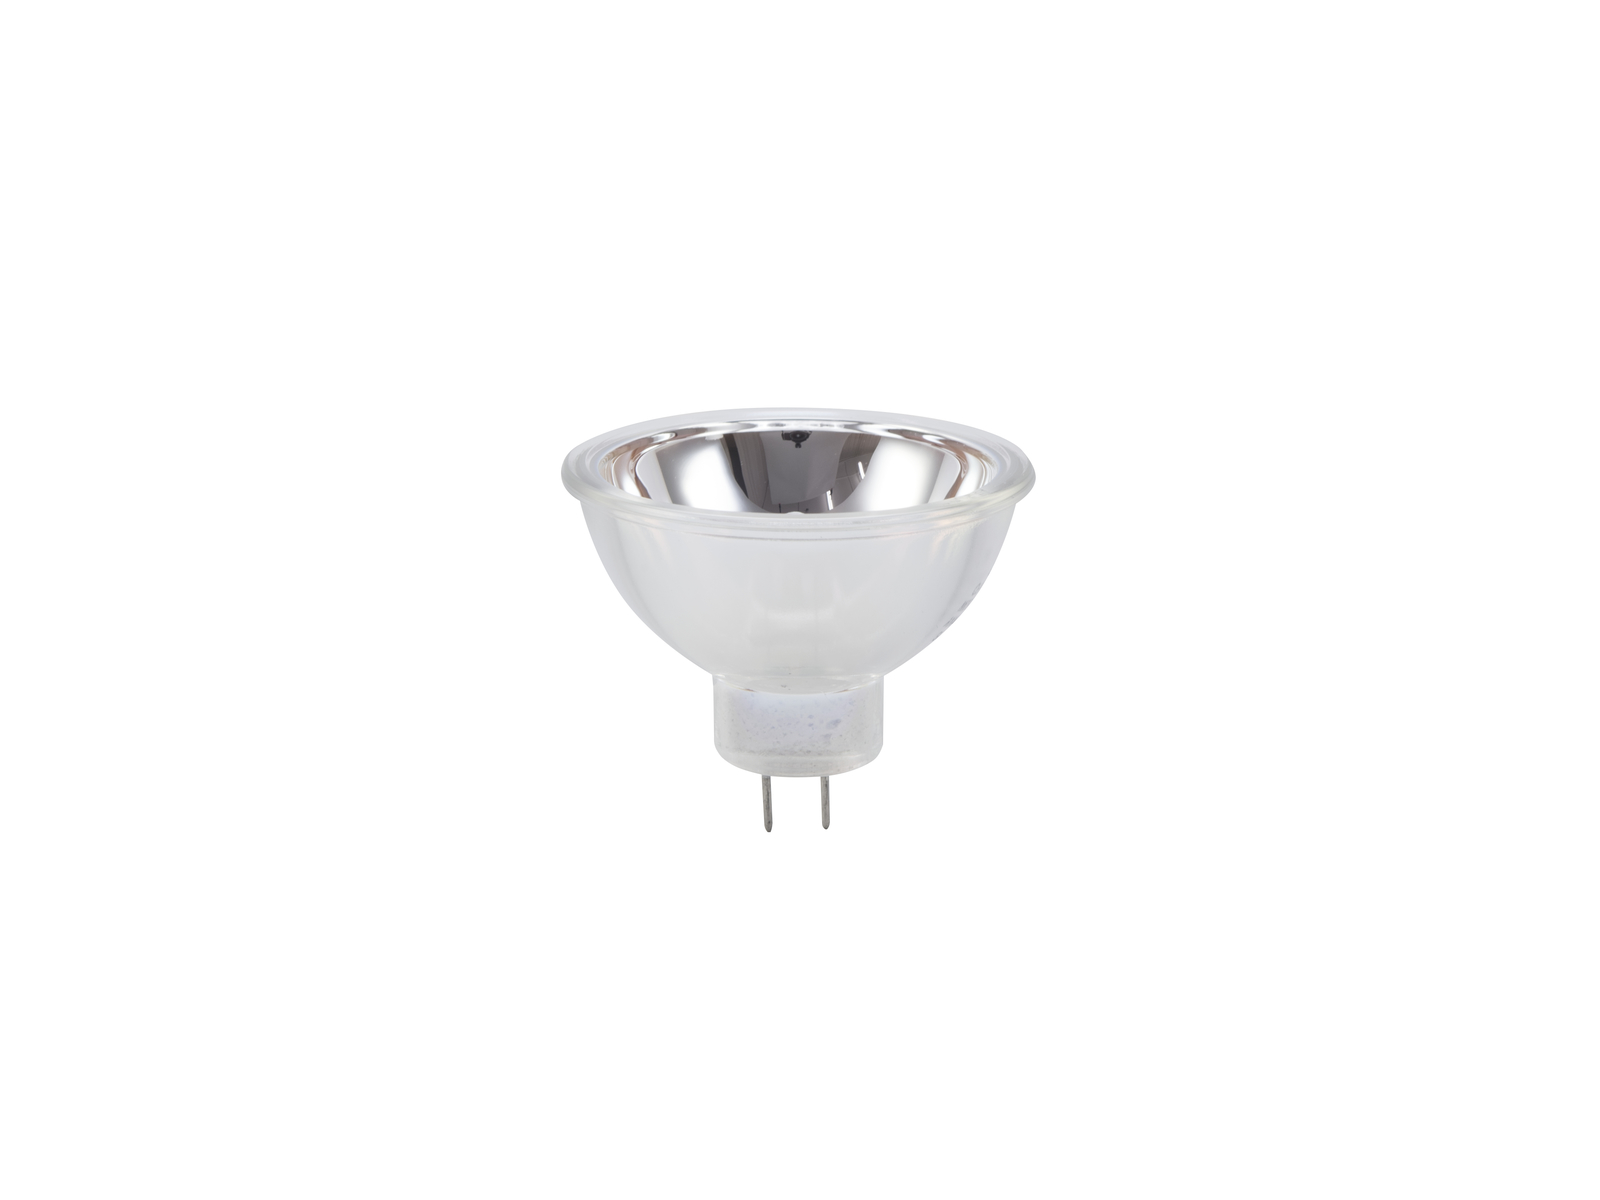 PHILIPS EFR 15V/150W 50h 50mm riflettore